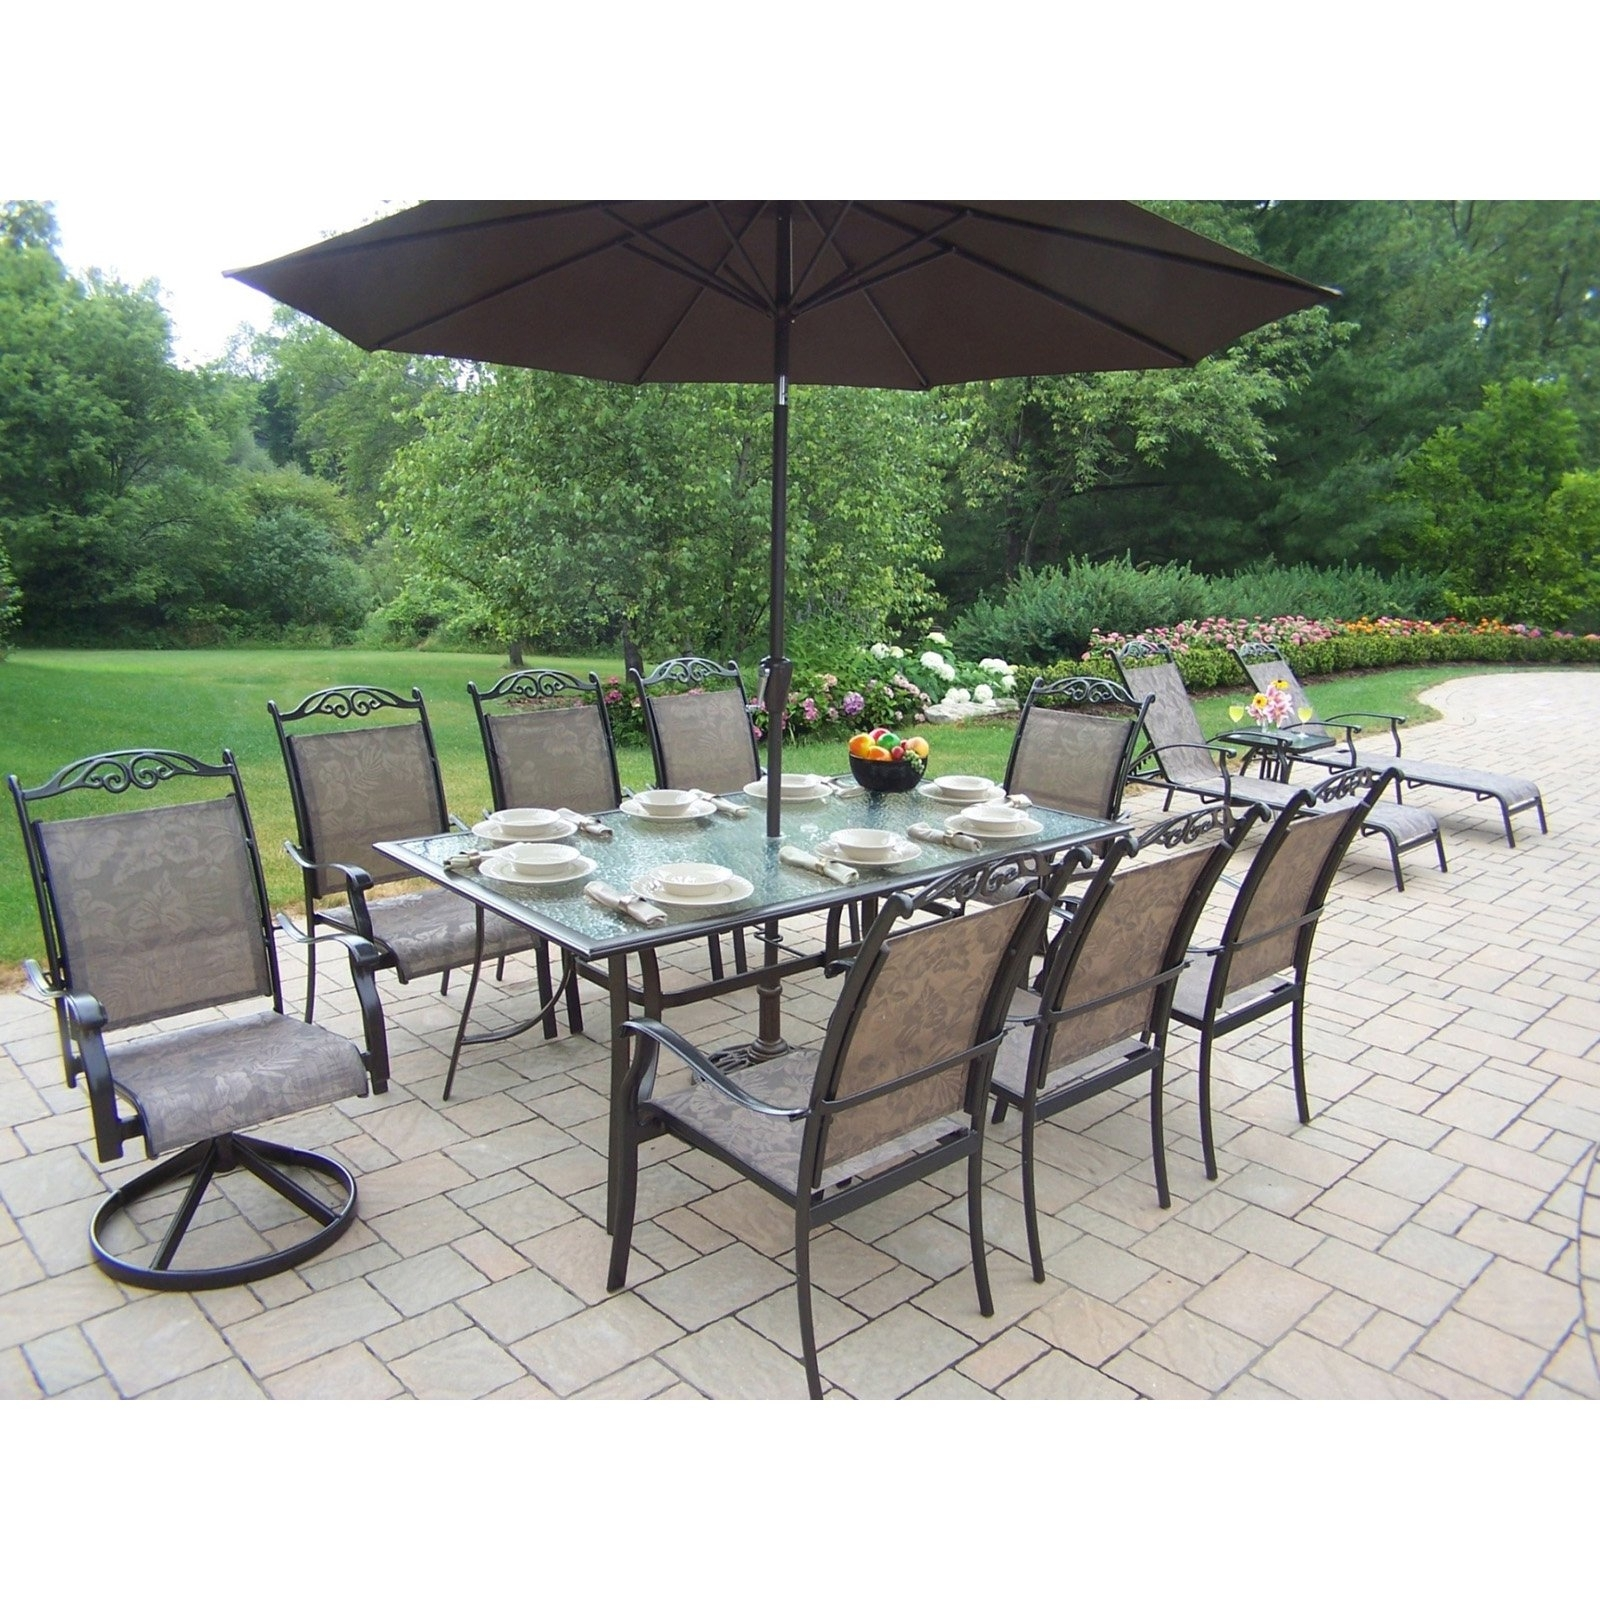 Patio Dining Umbrellas Within 2019 Patio Furniture Walmart Patio Furniture Sets Patio Dining Luxury (View 15 of 20)